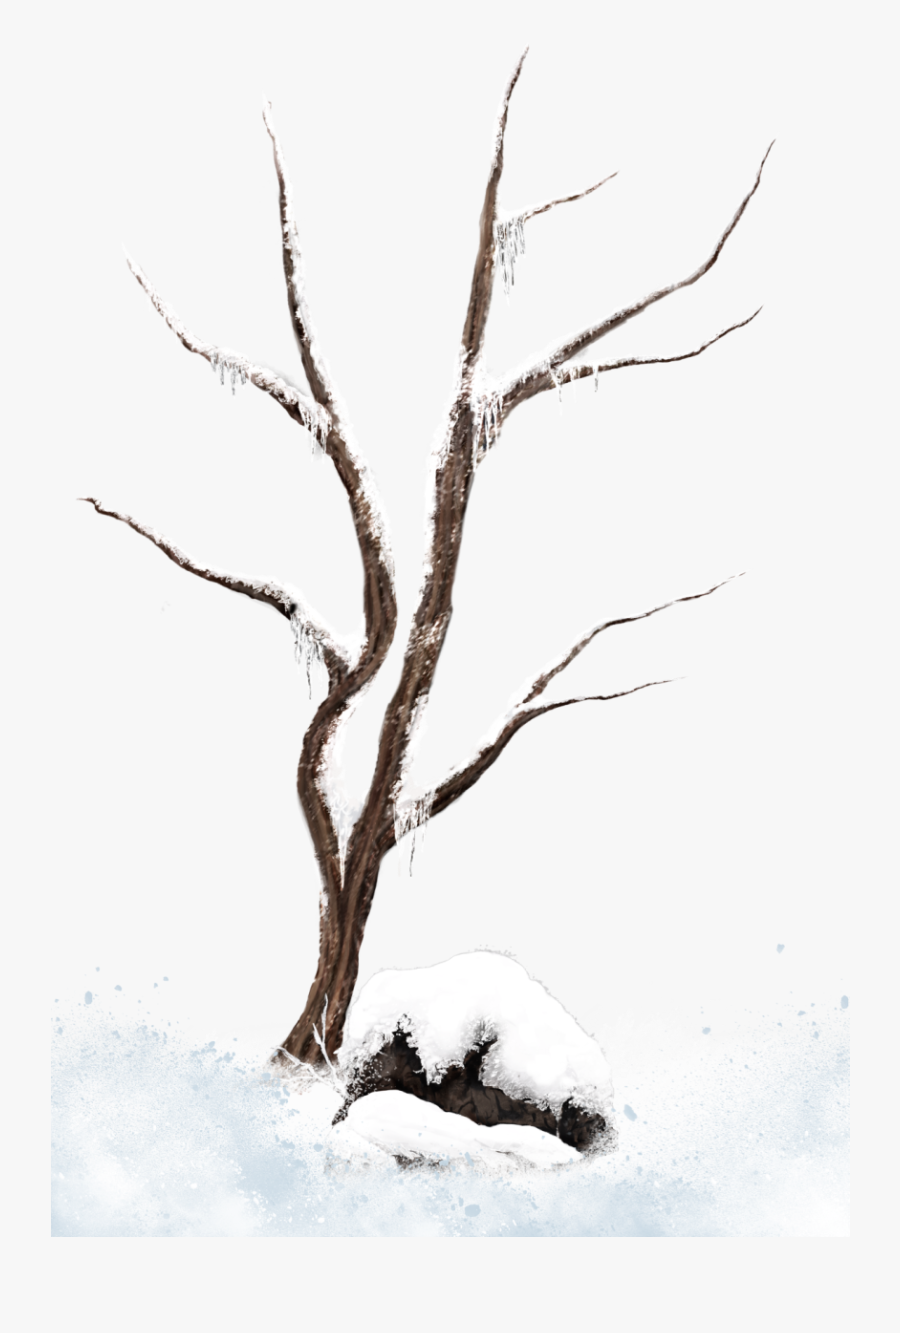 Winter Tree Branches Clip Art Clipart Free Download - Snowy Trees Clip Art, Transparent Clipart